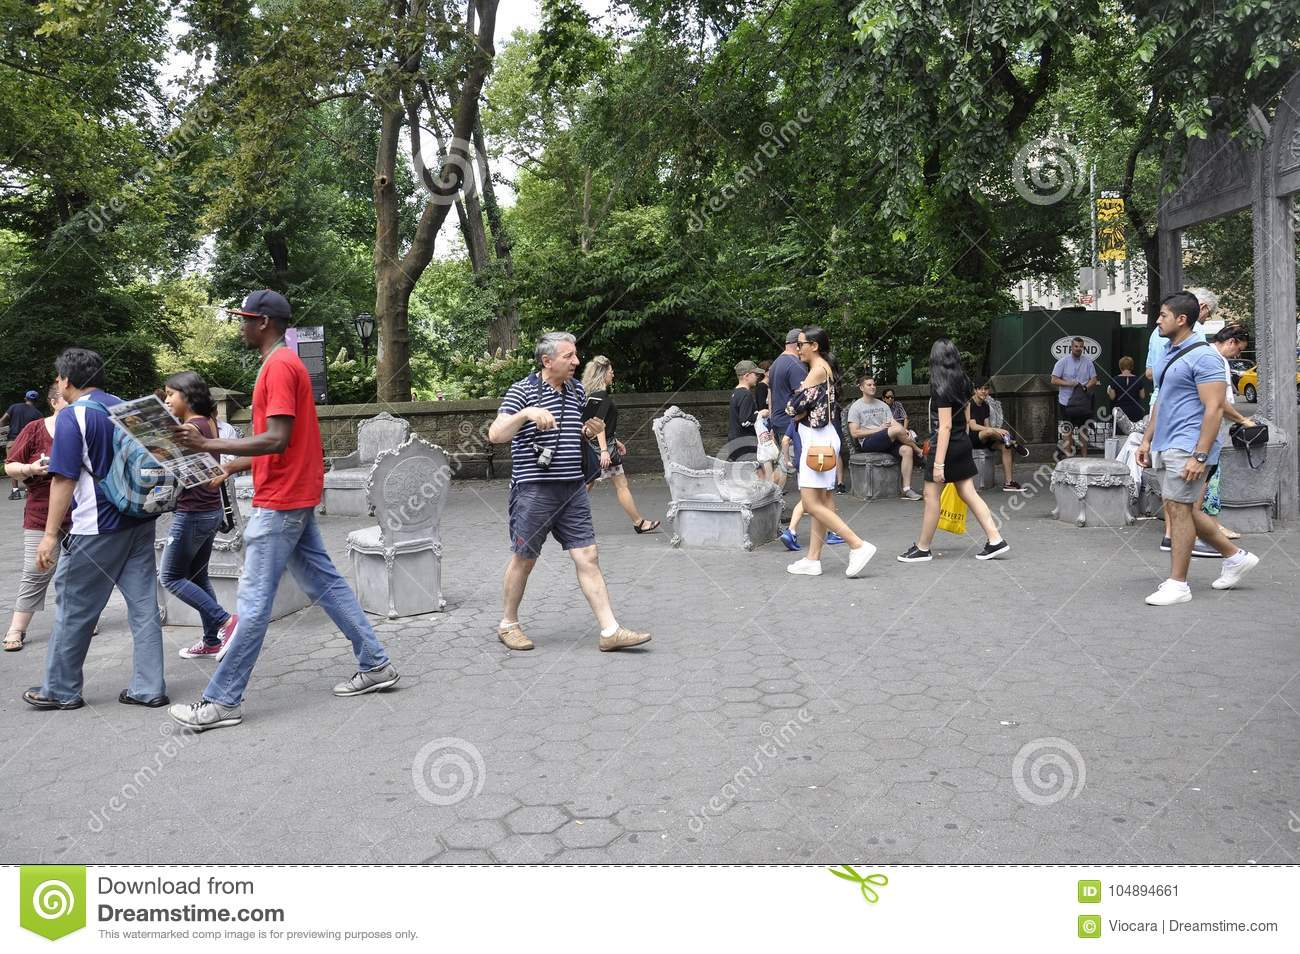 New York, 1st July: People Relaxing in Central Park in Midtown Manhattan from New York City in United States